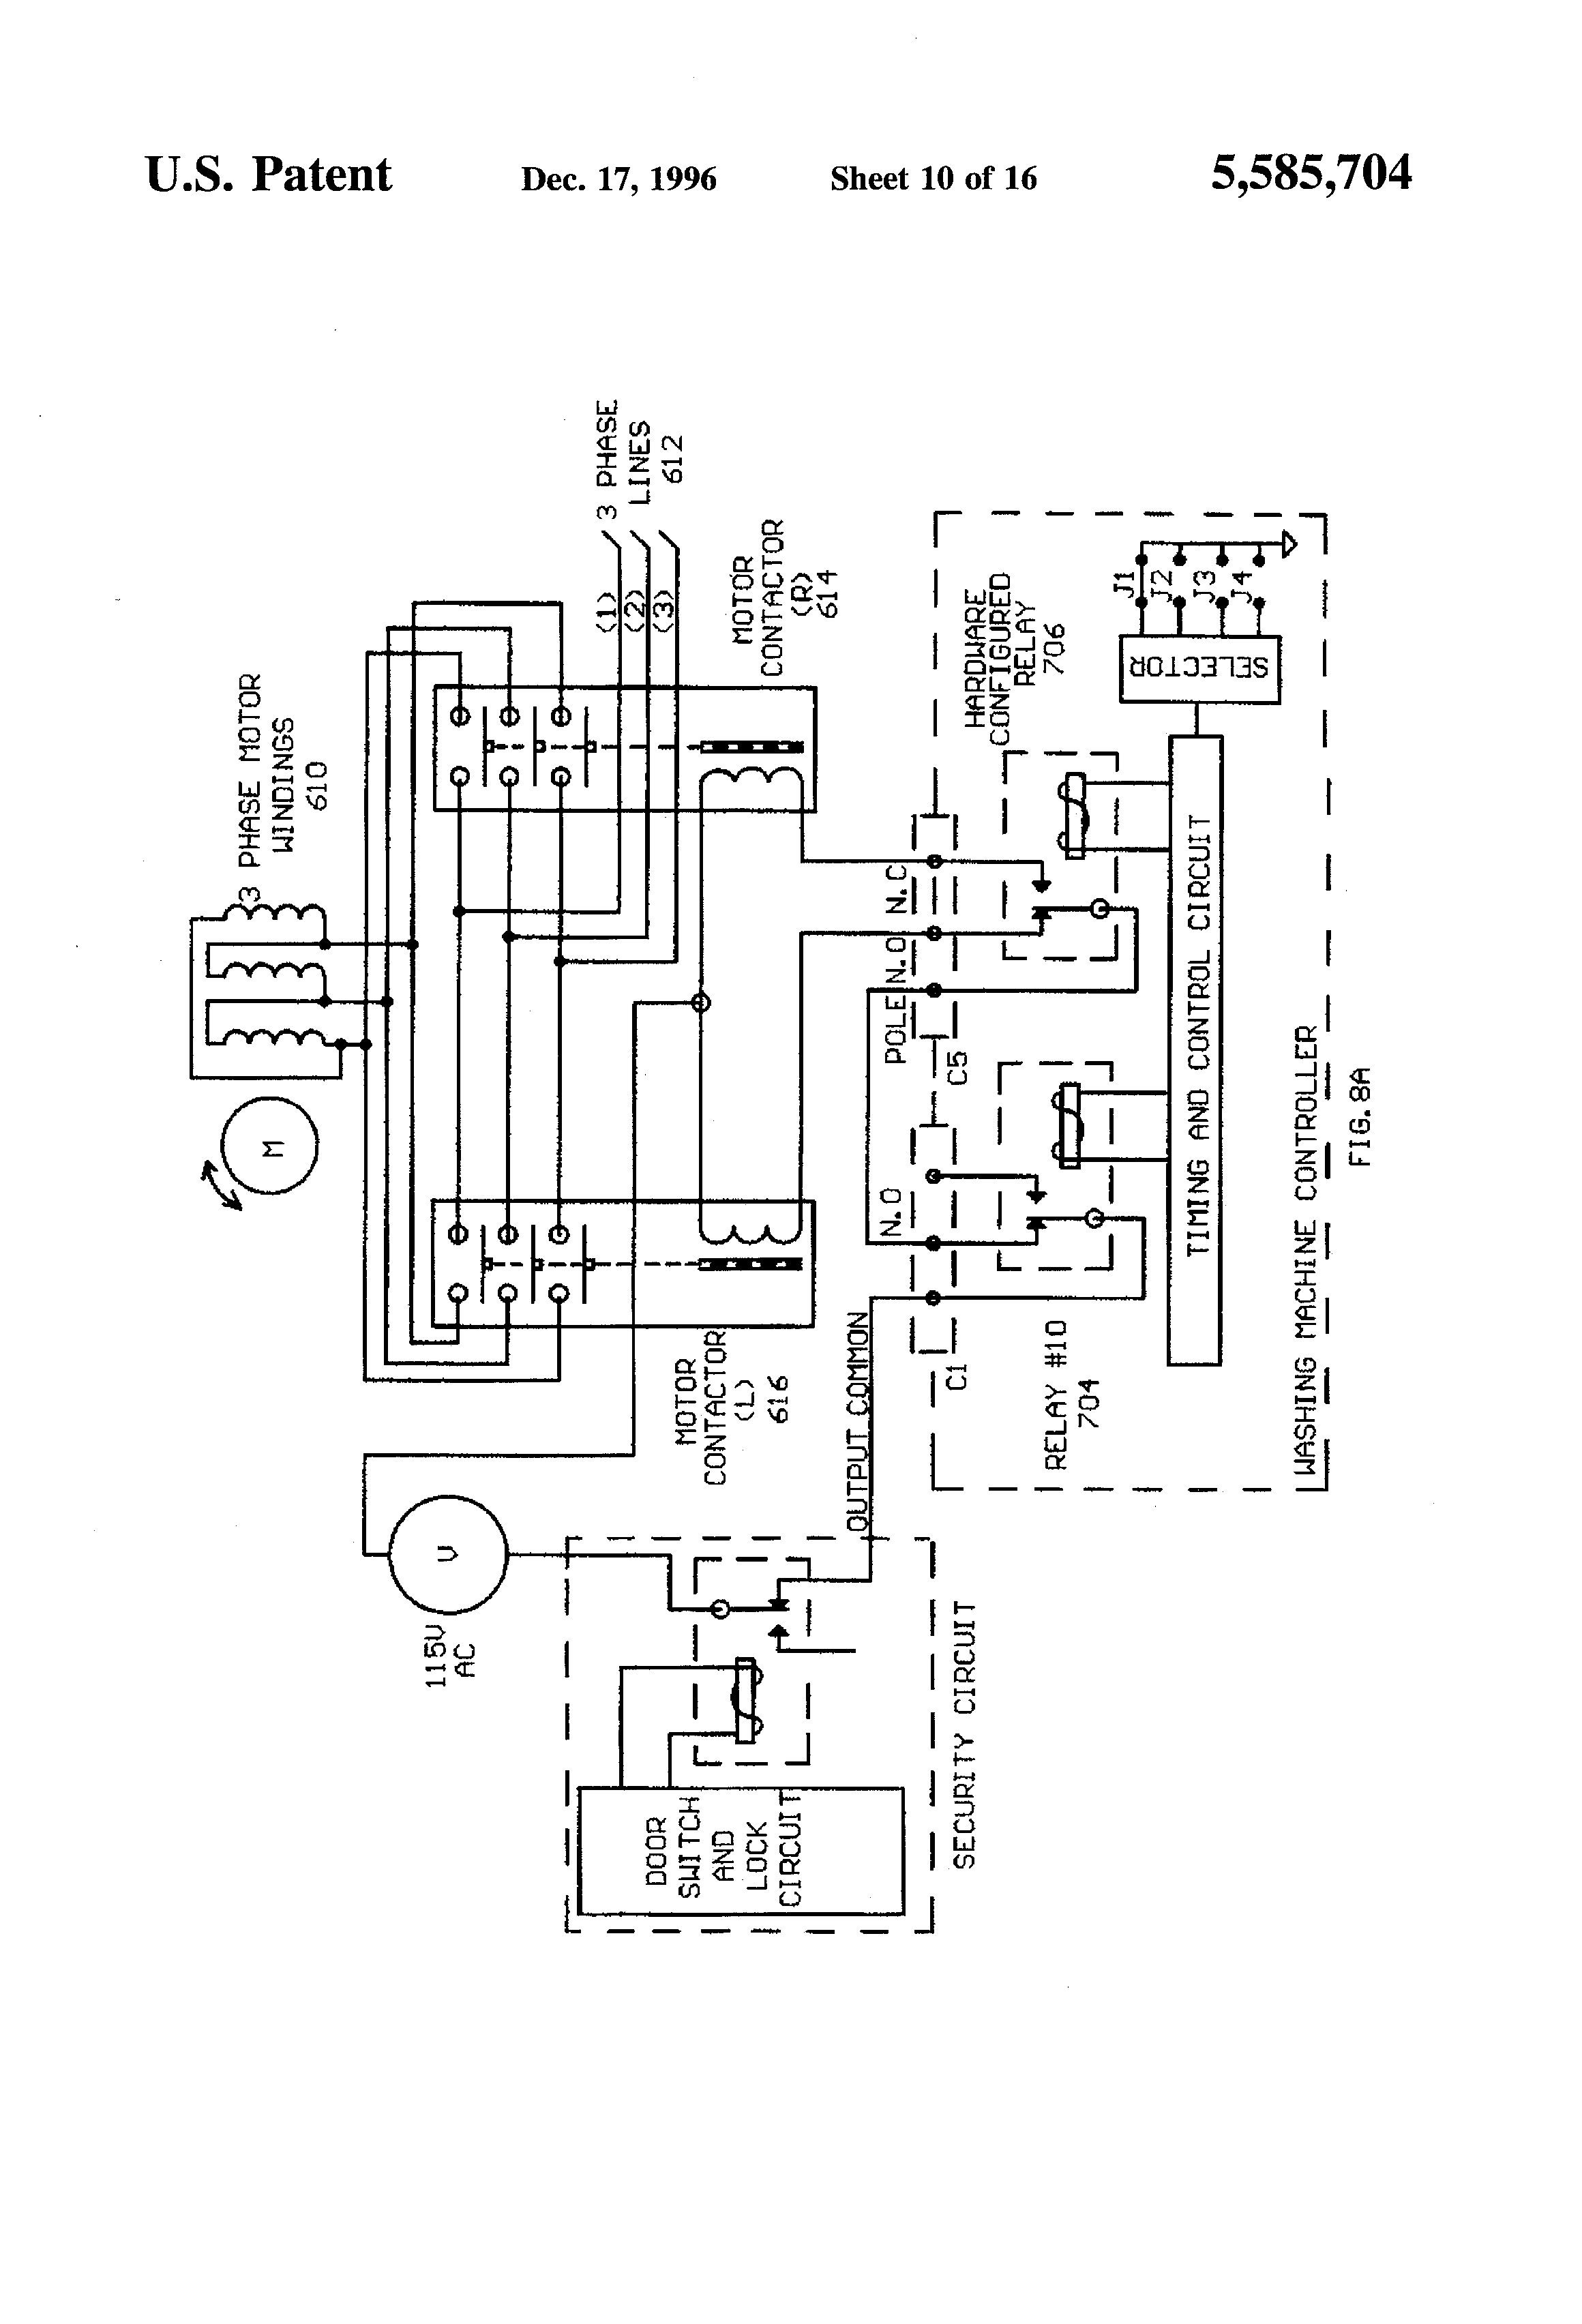 hight resolution of wiring diagram of washing machine motor wiring diagram washing how to read washing machine wiring diagram